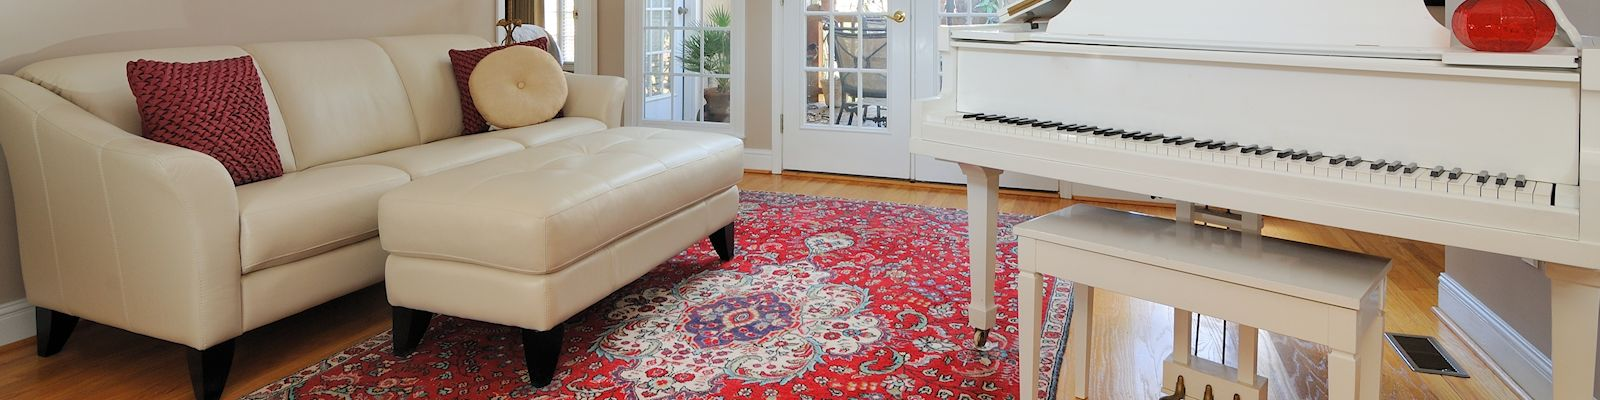 Khouri's Oriental Rug Cleaning